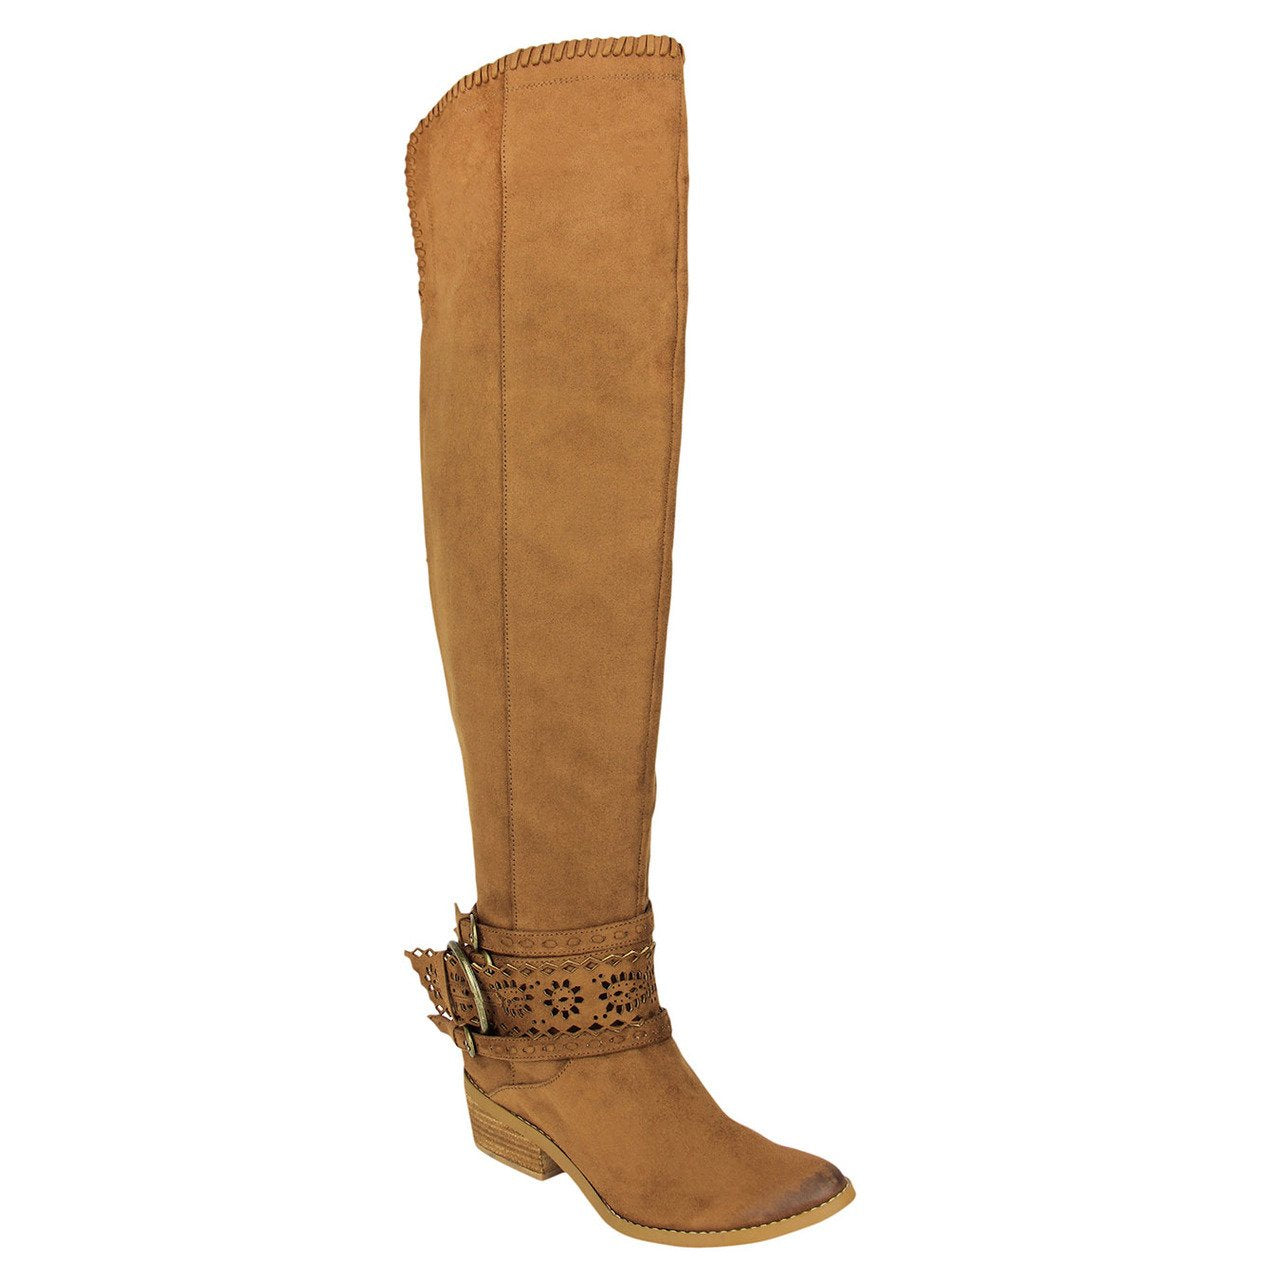 Over the knee tan boots with harness detail front view.